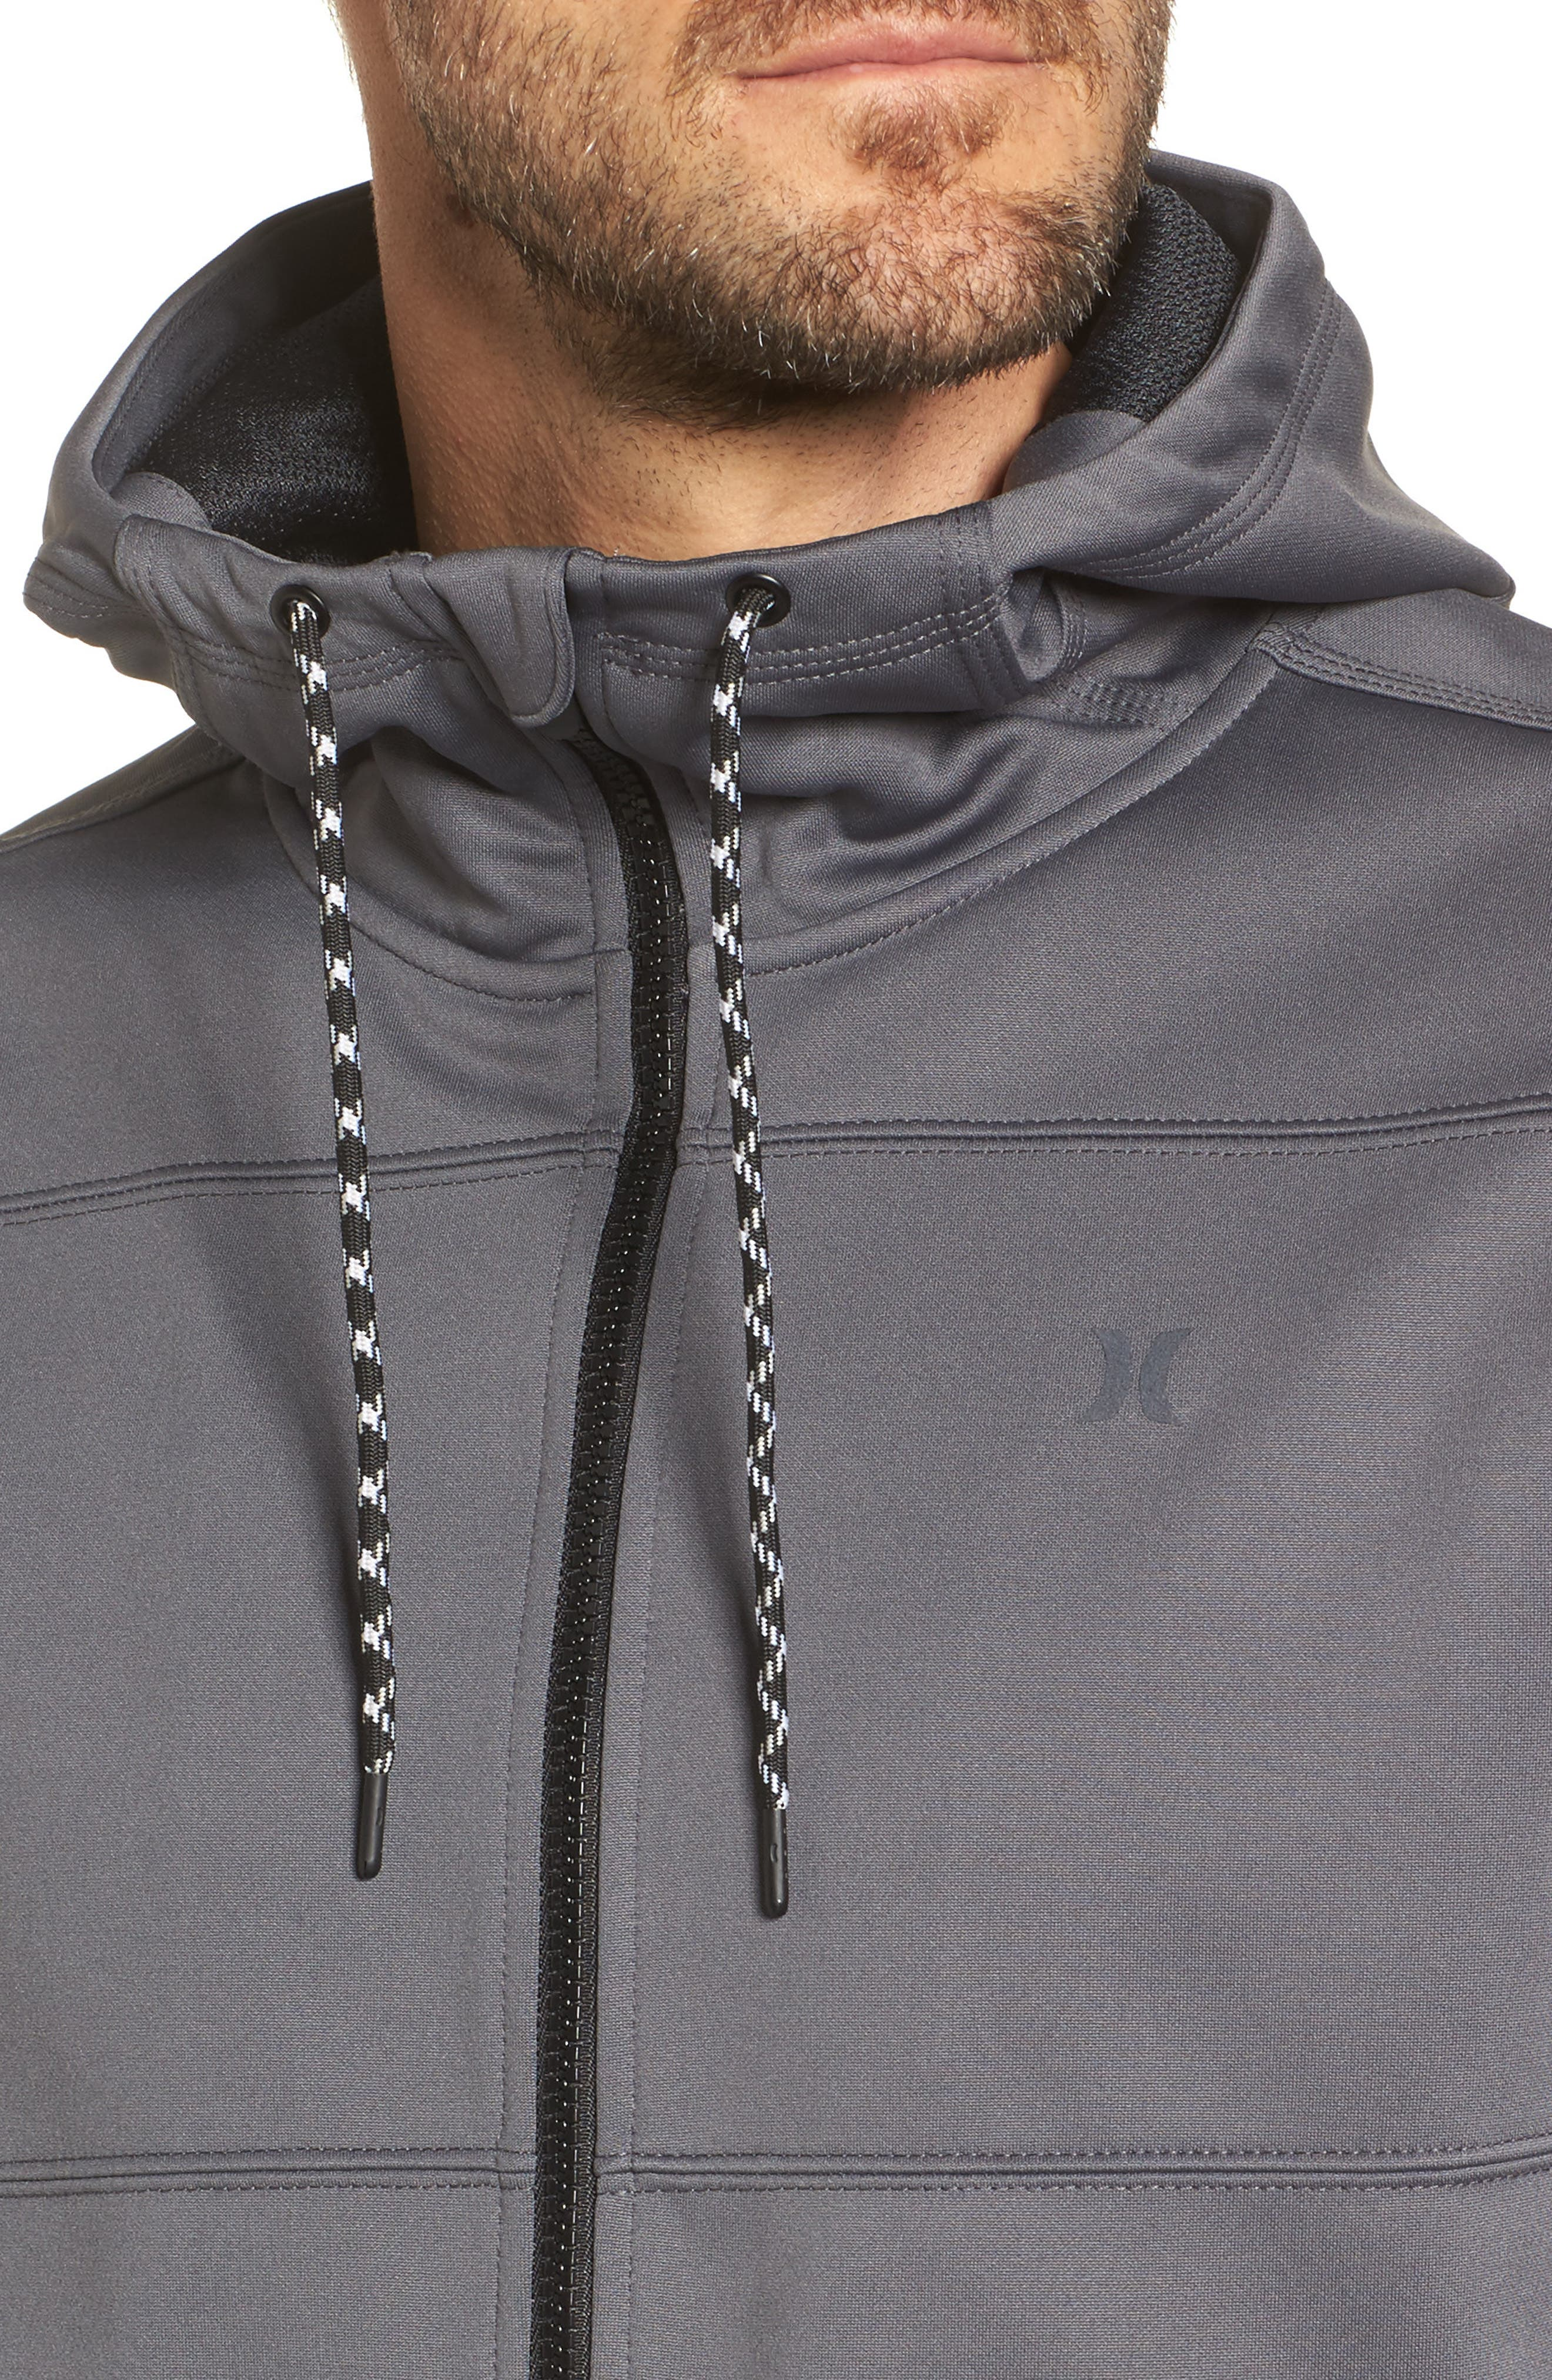 Therma Protect Zip Hoodie,                             Alternate thumbnail 11, color,